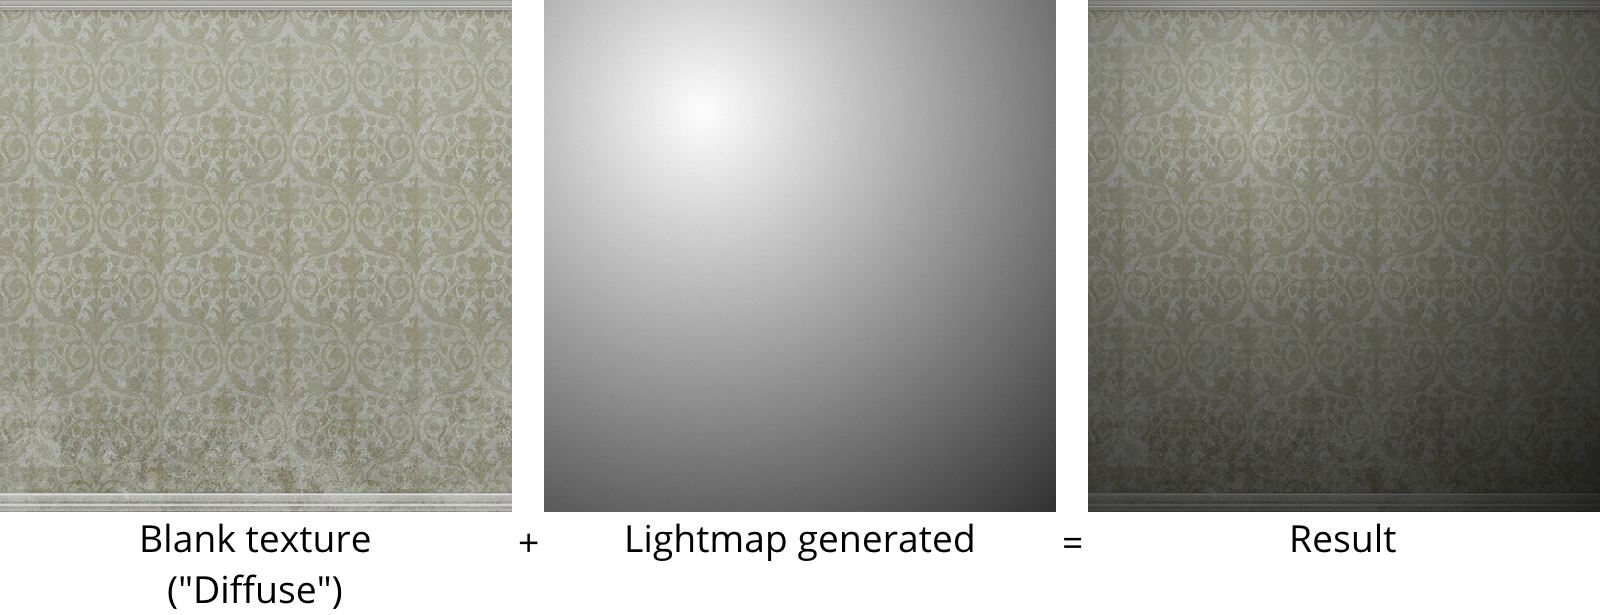 lightmap_application_example.png.b635371